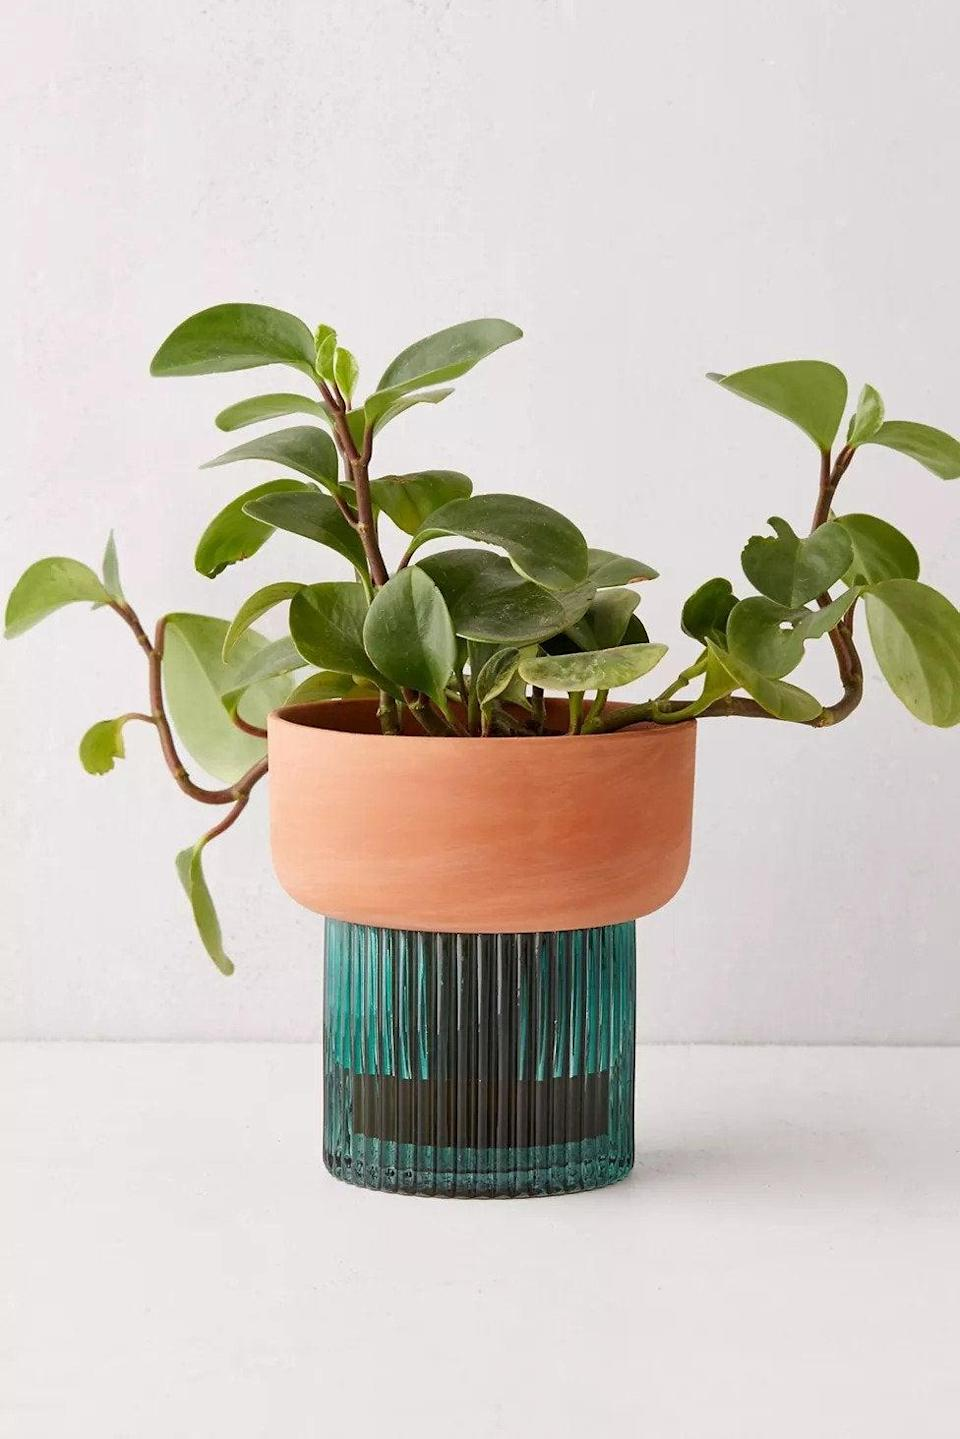 """<h2>UO Izzie Self-Watering Planter</h2><br><strong>Best For: Function + Decor</strong><br>Urban Outfitters never fails to provide us with products that are the perfect mix of beauty and brains. This sea green ceramic glass planter will keep your buds properly hydrated all day long and looking dressed to the nines.<br><br><em>Shop</em> <strong><em><a href=""""http://urbanoutfitters.com"""" rel=""""nofollow noopener"""" target=""""_blank"""" data-ylk=""""slk:Urban Outfitters"""" class=""""link rapid-noclick-resp"""">Urban Outfitters</a></em></strong><br><br><strong>Urban Outfitters</strong> Izzie Self-Watering Planter, $, available at <a href=""""https://go.skimresources.com/?id=30283X879131&url=https%3A%2F%2Fwww.urbanoutfitters.com%2Fshop%2Fizzie-self-watering-planter"""" rel=""""nofollow noopener"""" target=""""_blank"""" data-ylk=""""slk:Urban Outfitters"""" class=""""link rapid-noclick-resp"""">Urban Outfitters</a>"""